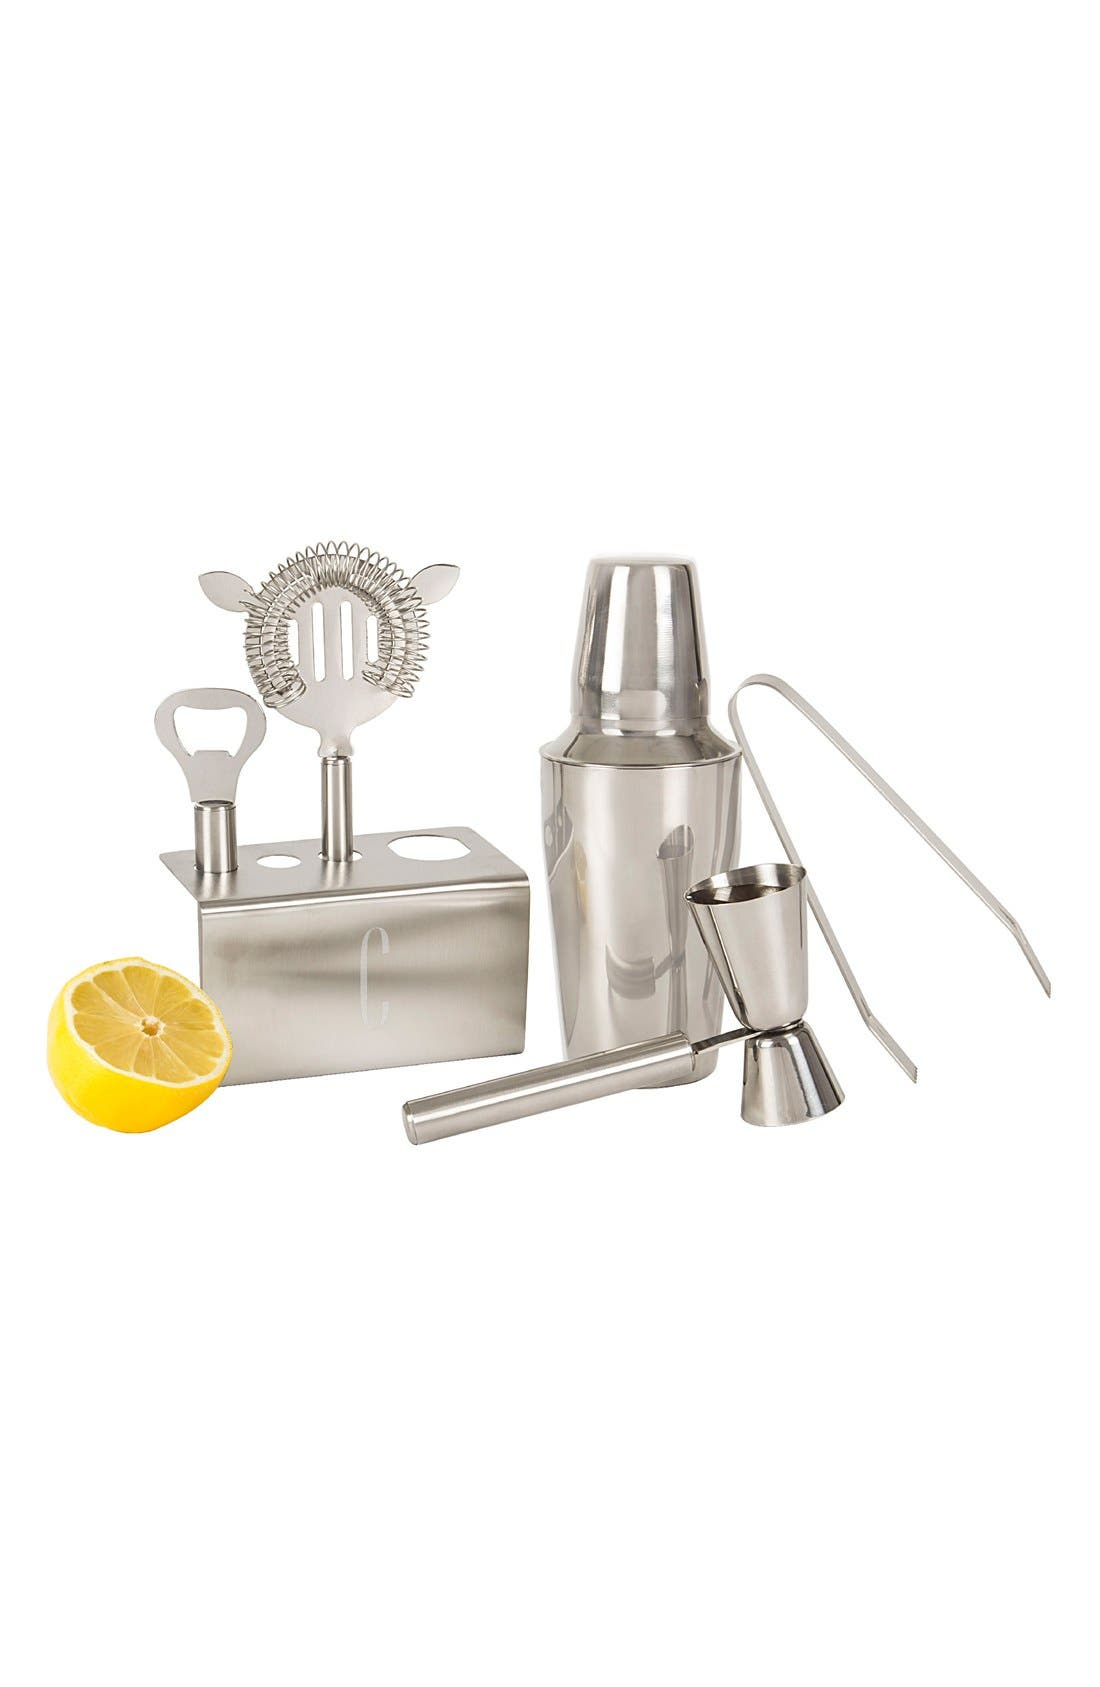 Monogram Stainless Steel Mixology Set,                             Main thumbnail 1, color,                             C